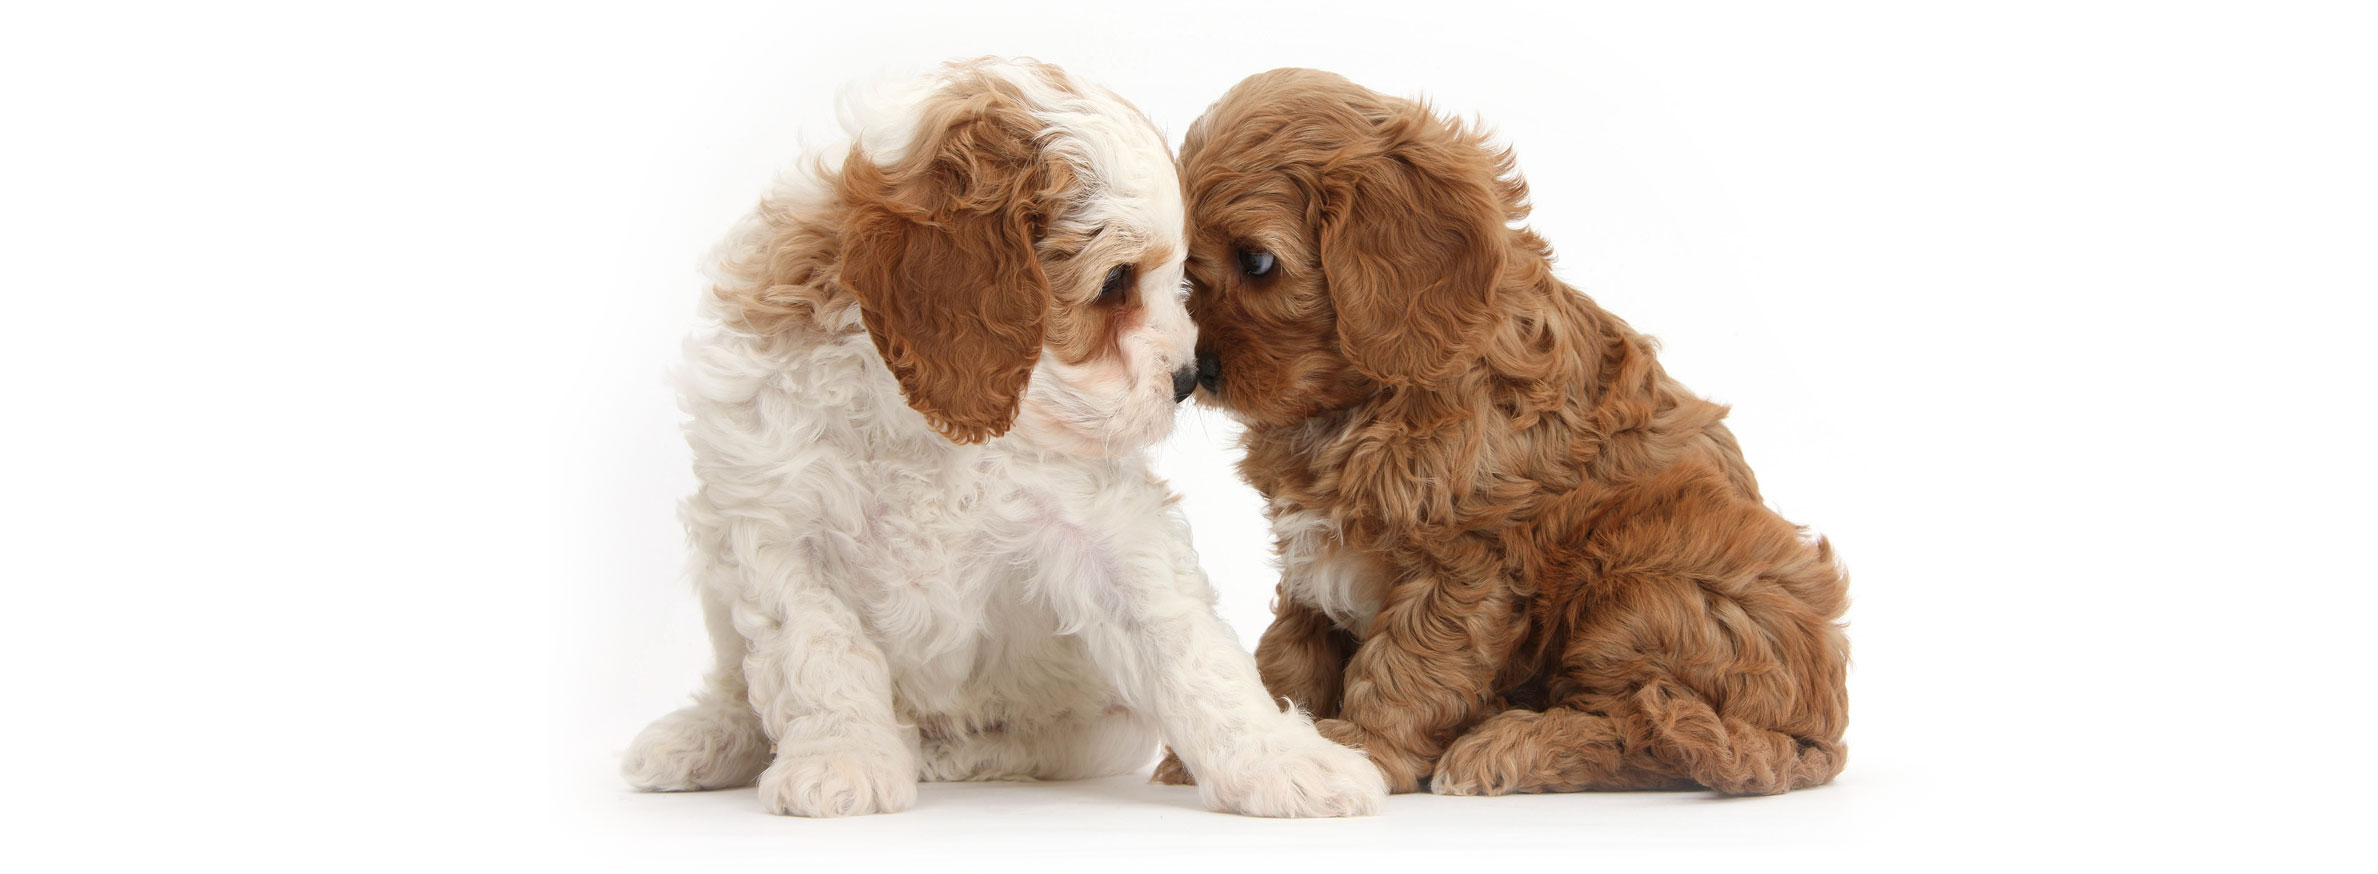 Southern California labradoodle puppies